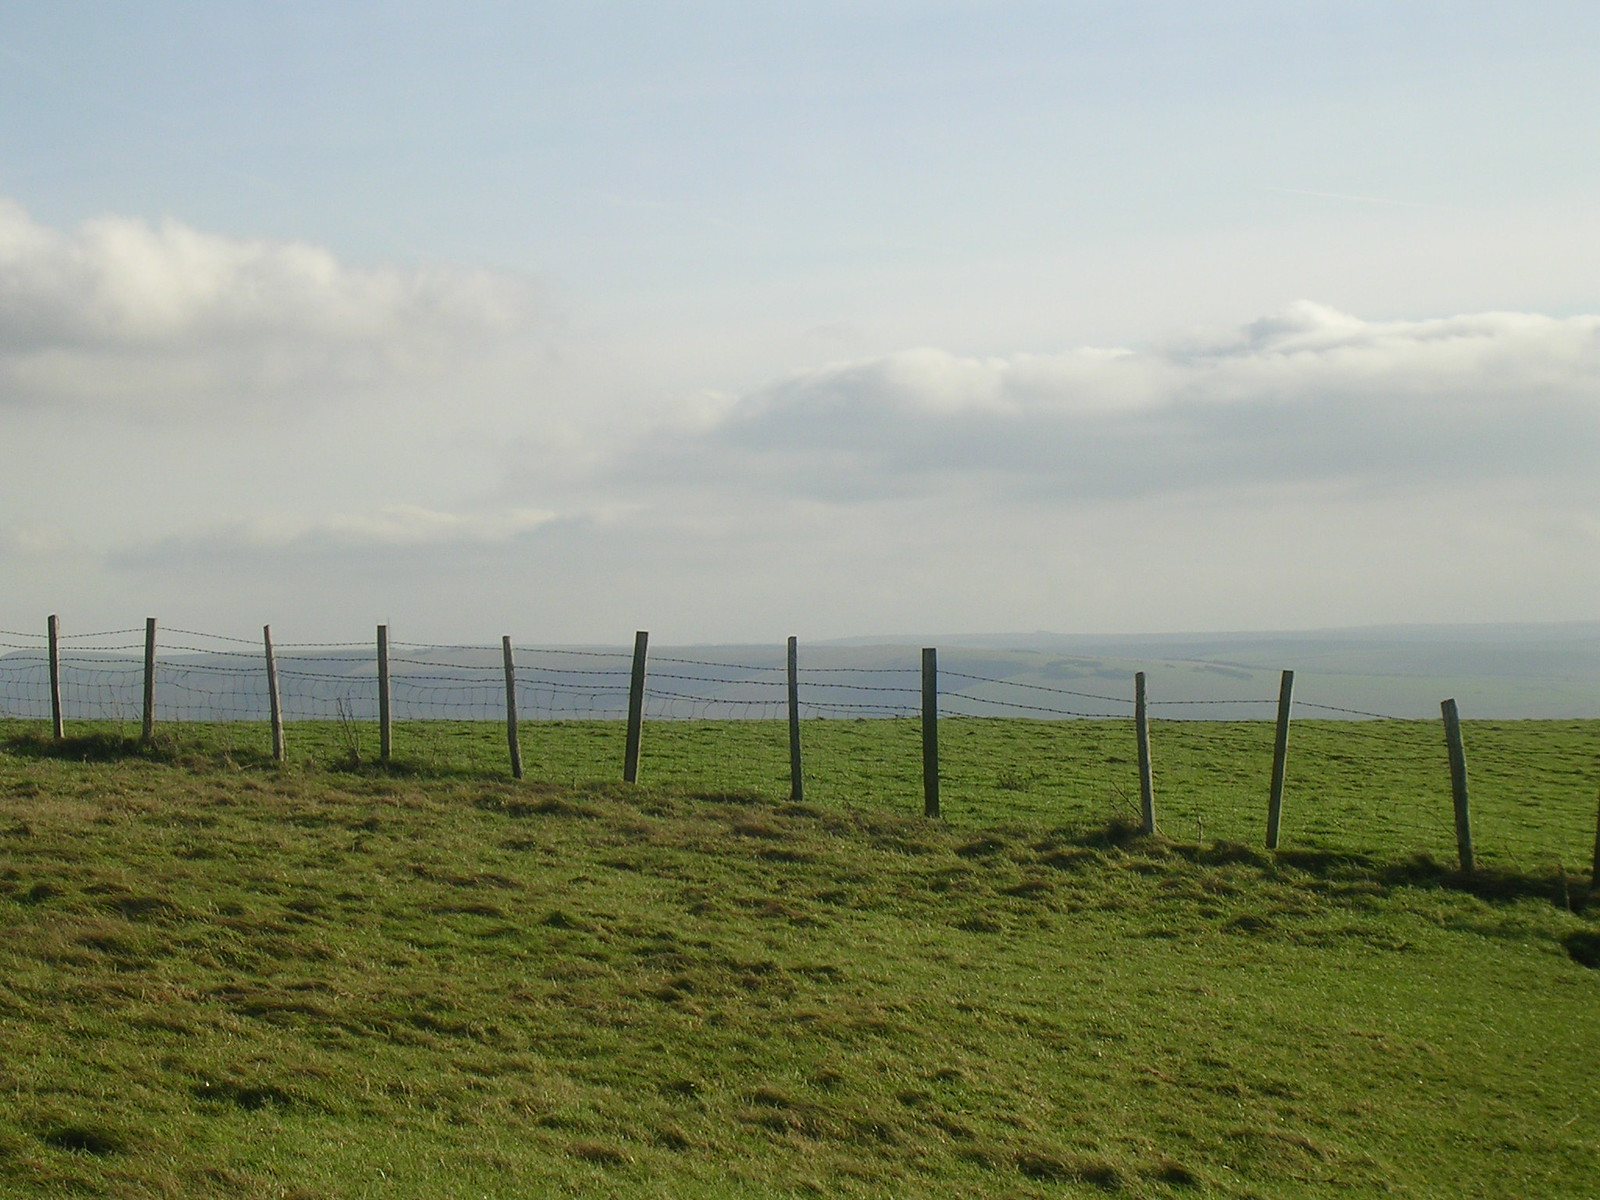 Fence Lewes to Saltdean via Rodmell